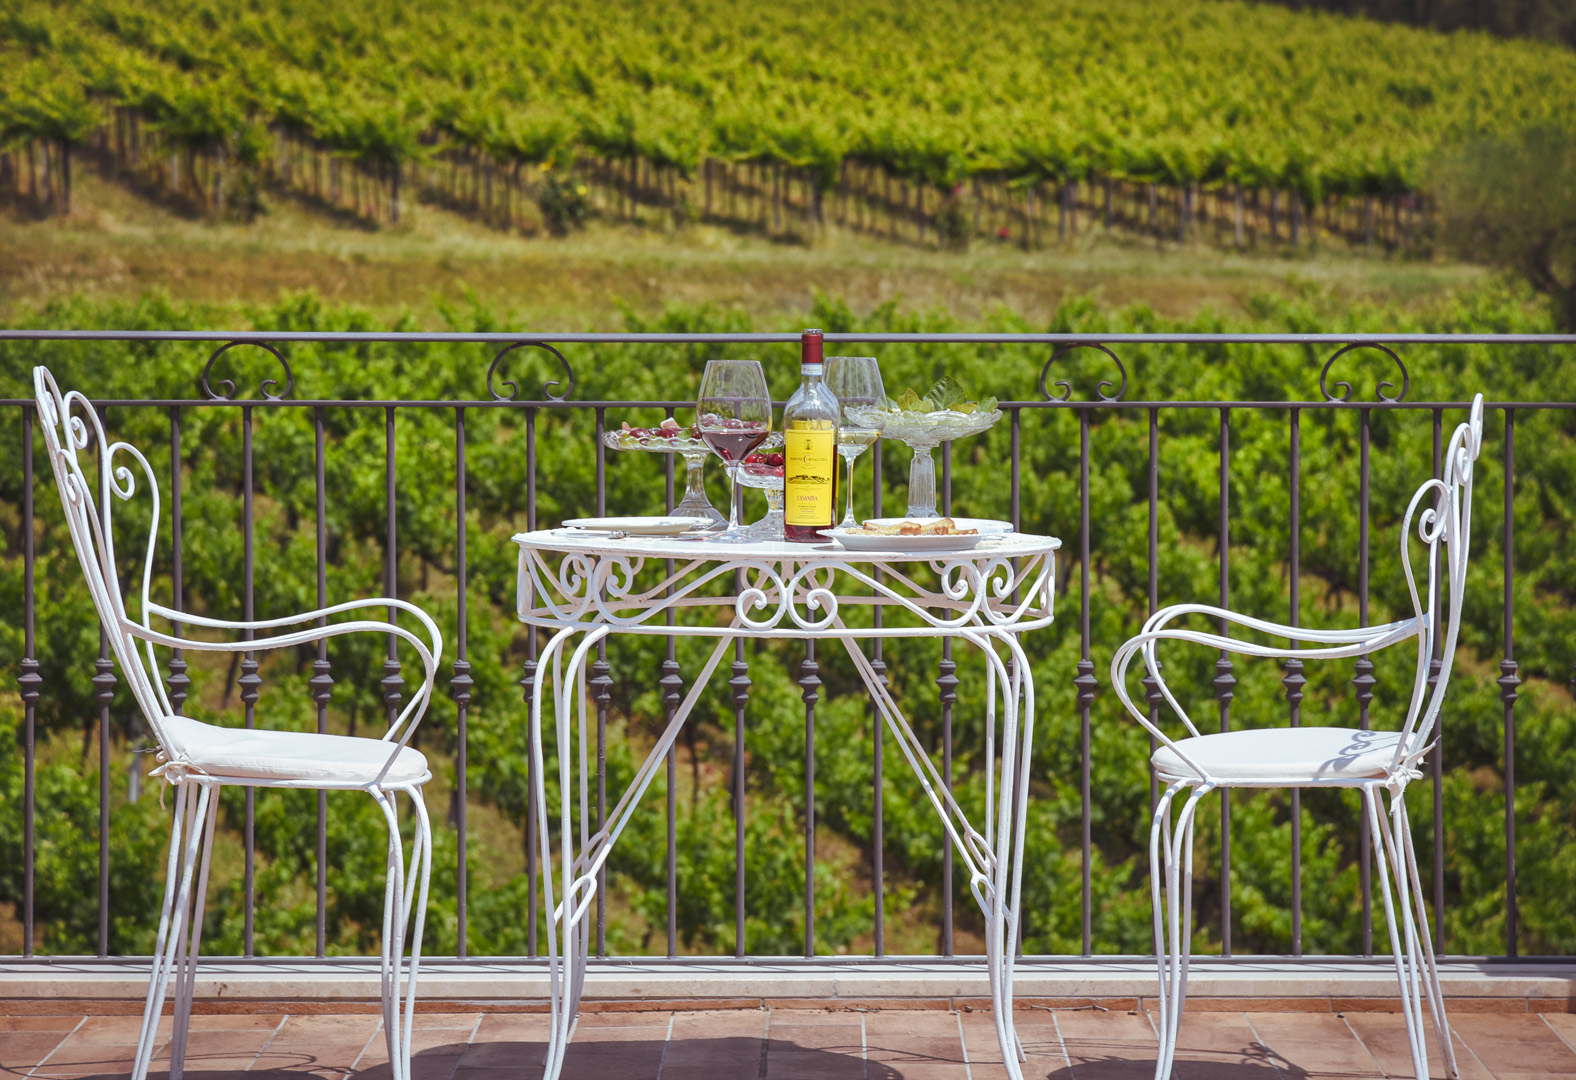 taste experiences in the heart of the Teramo hills